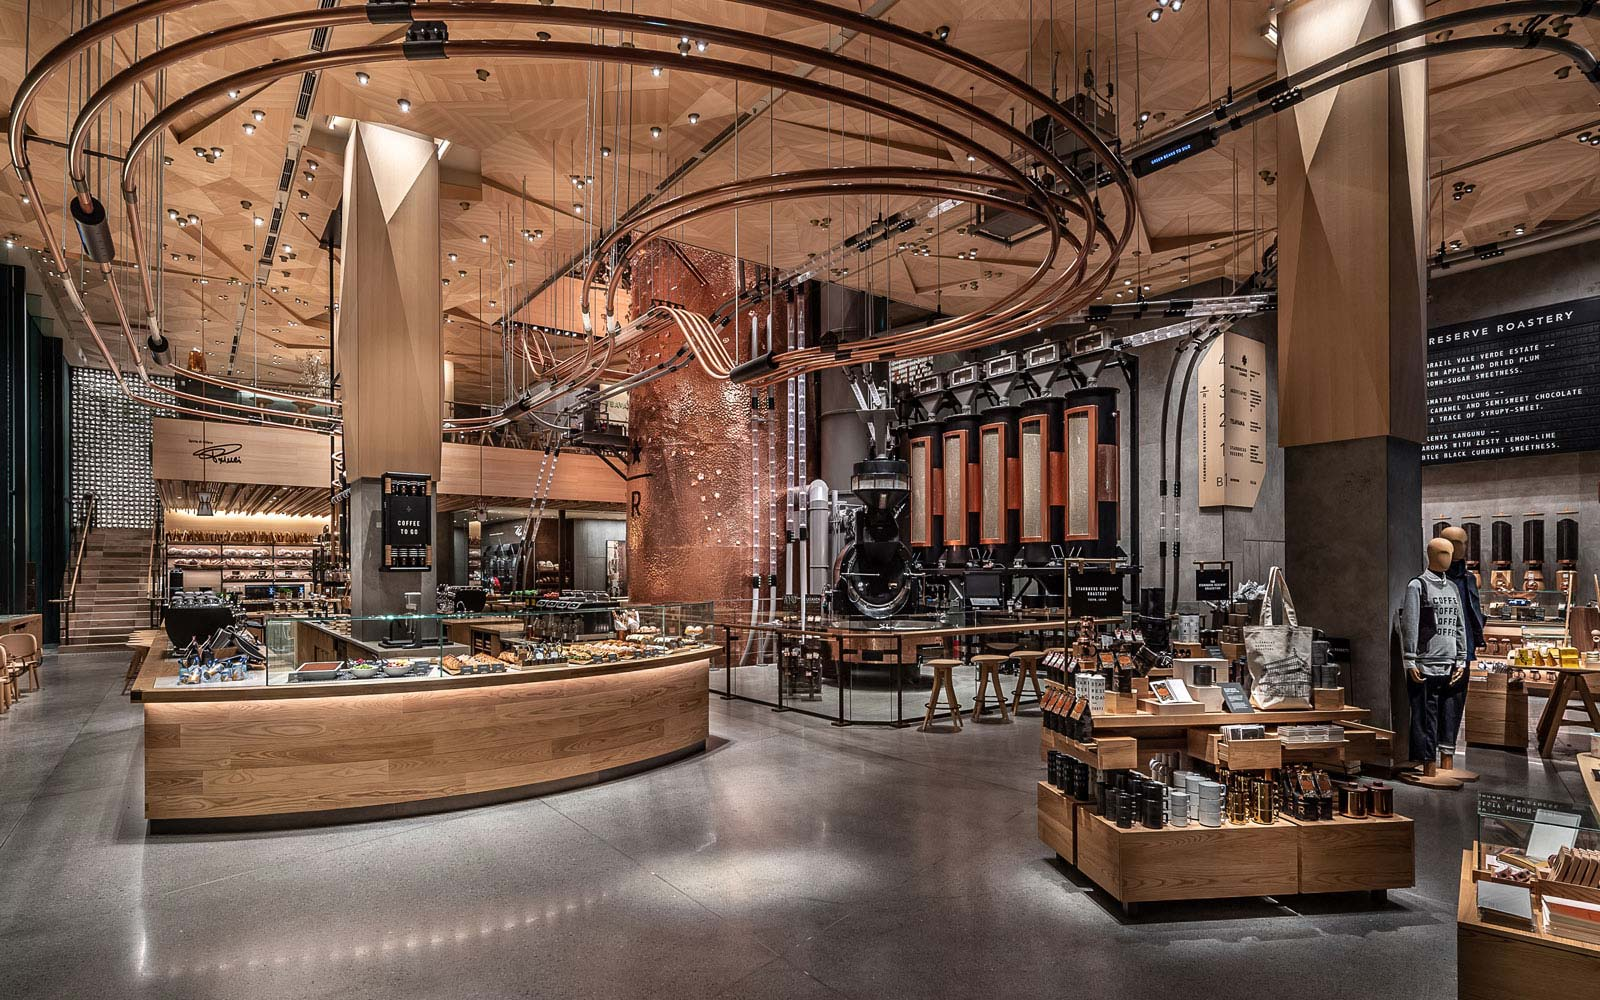 Starbucks' Newest Roastery Is 4 Stories Tall and Has 60 Exclusive Drinks